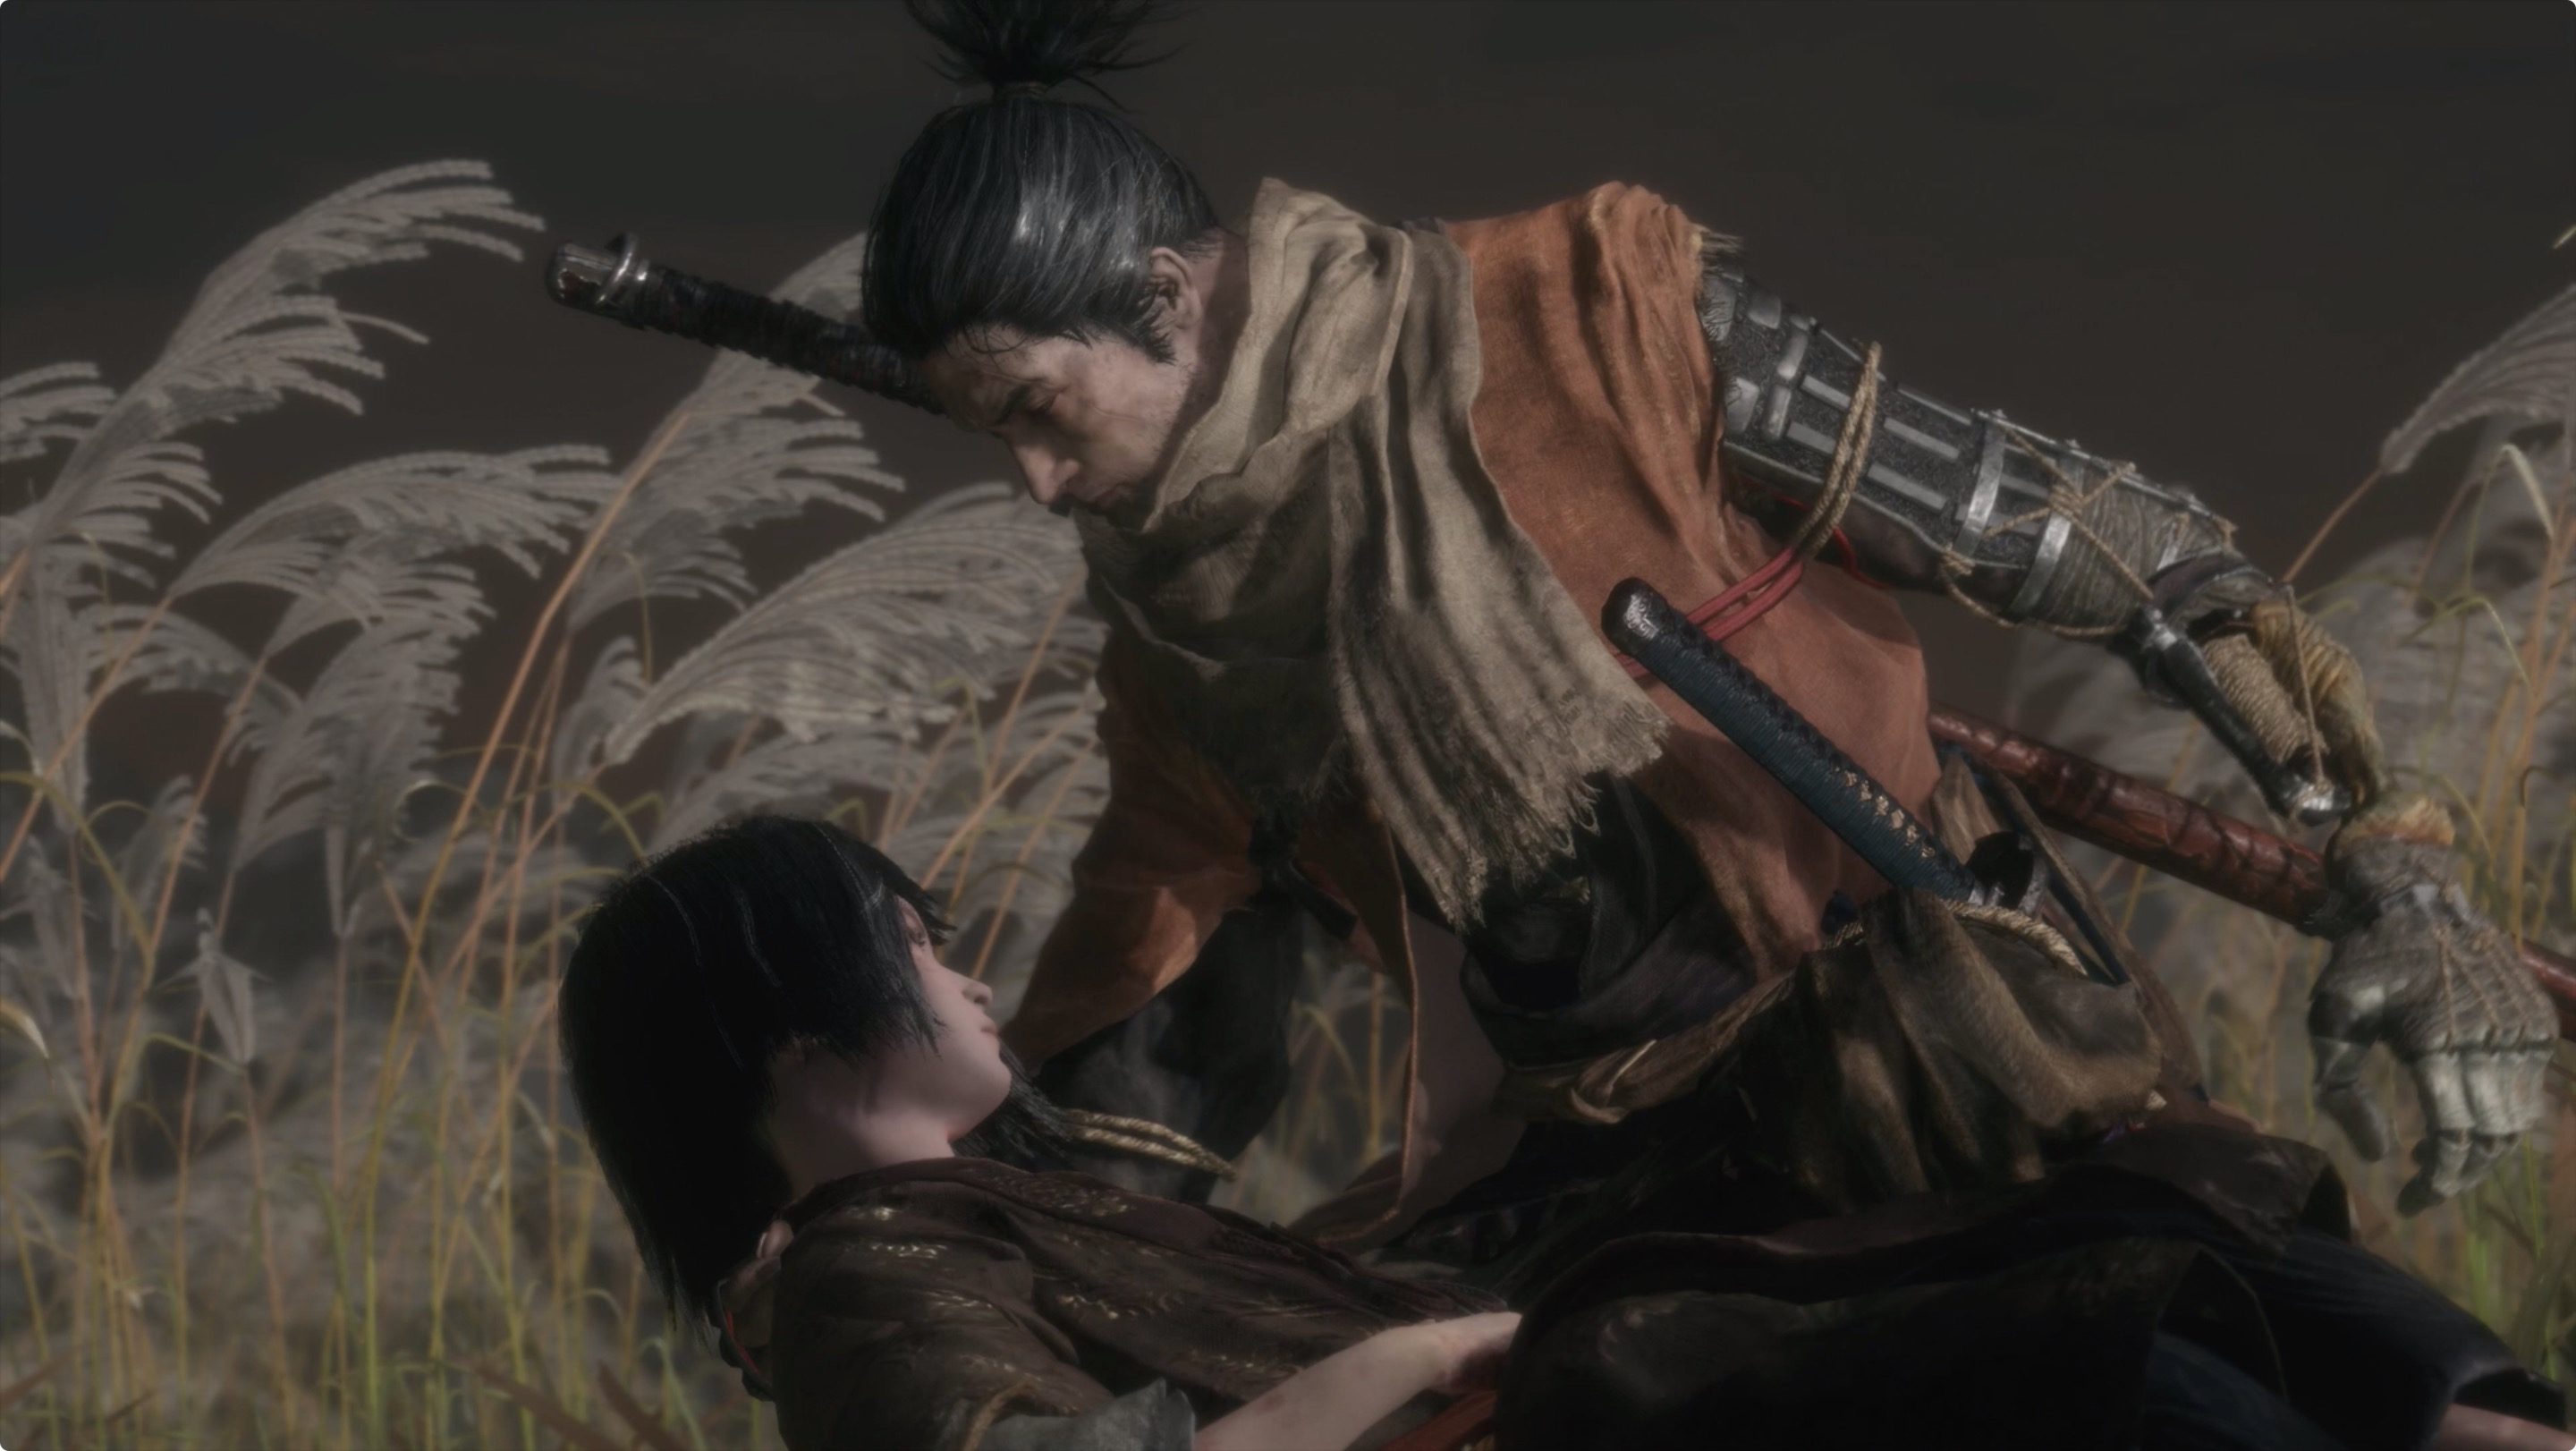 How to get all four endings in Sekiro